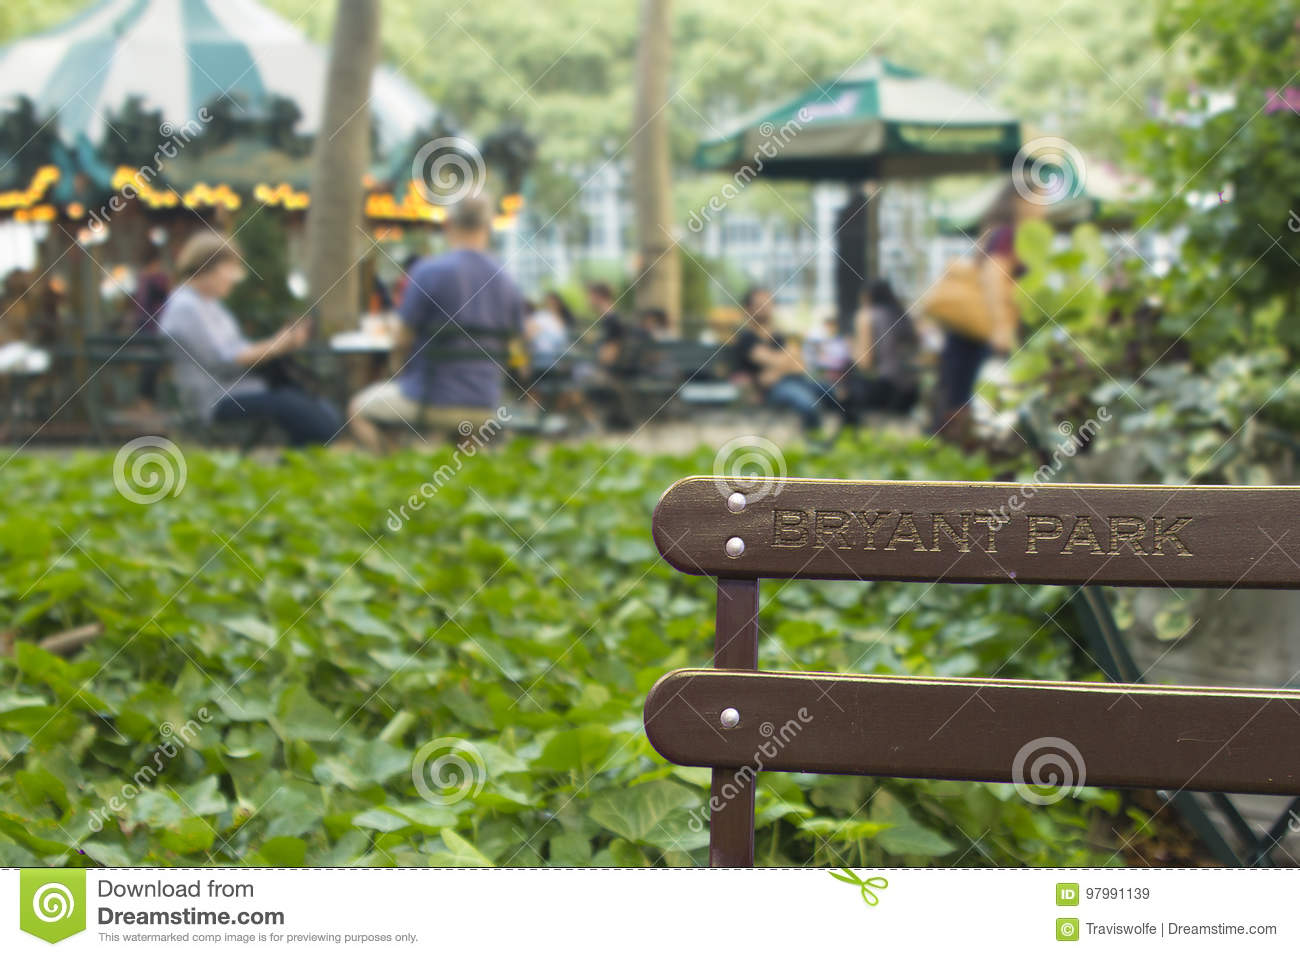 Bryant Park Background Wallpaper High Res Bench With People